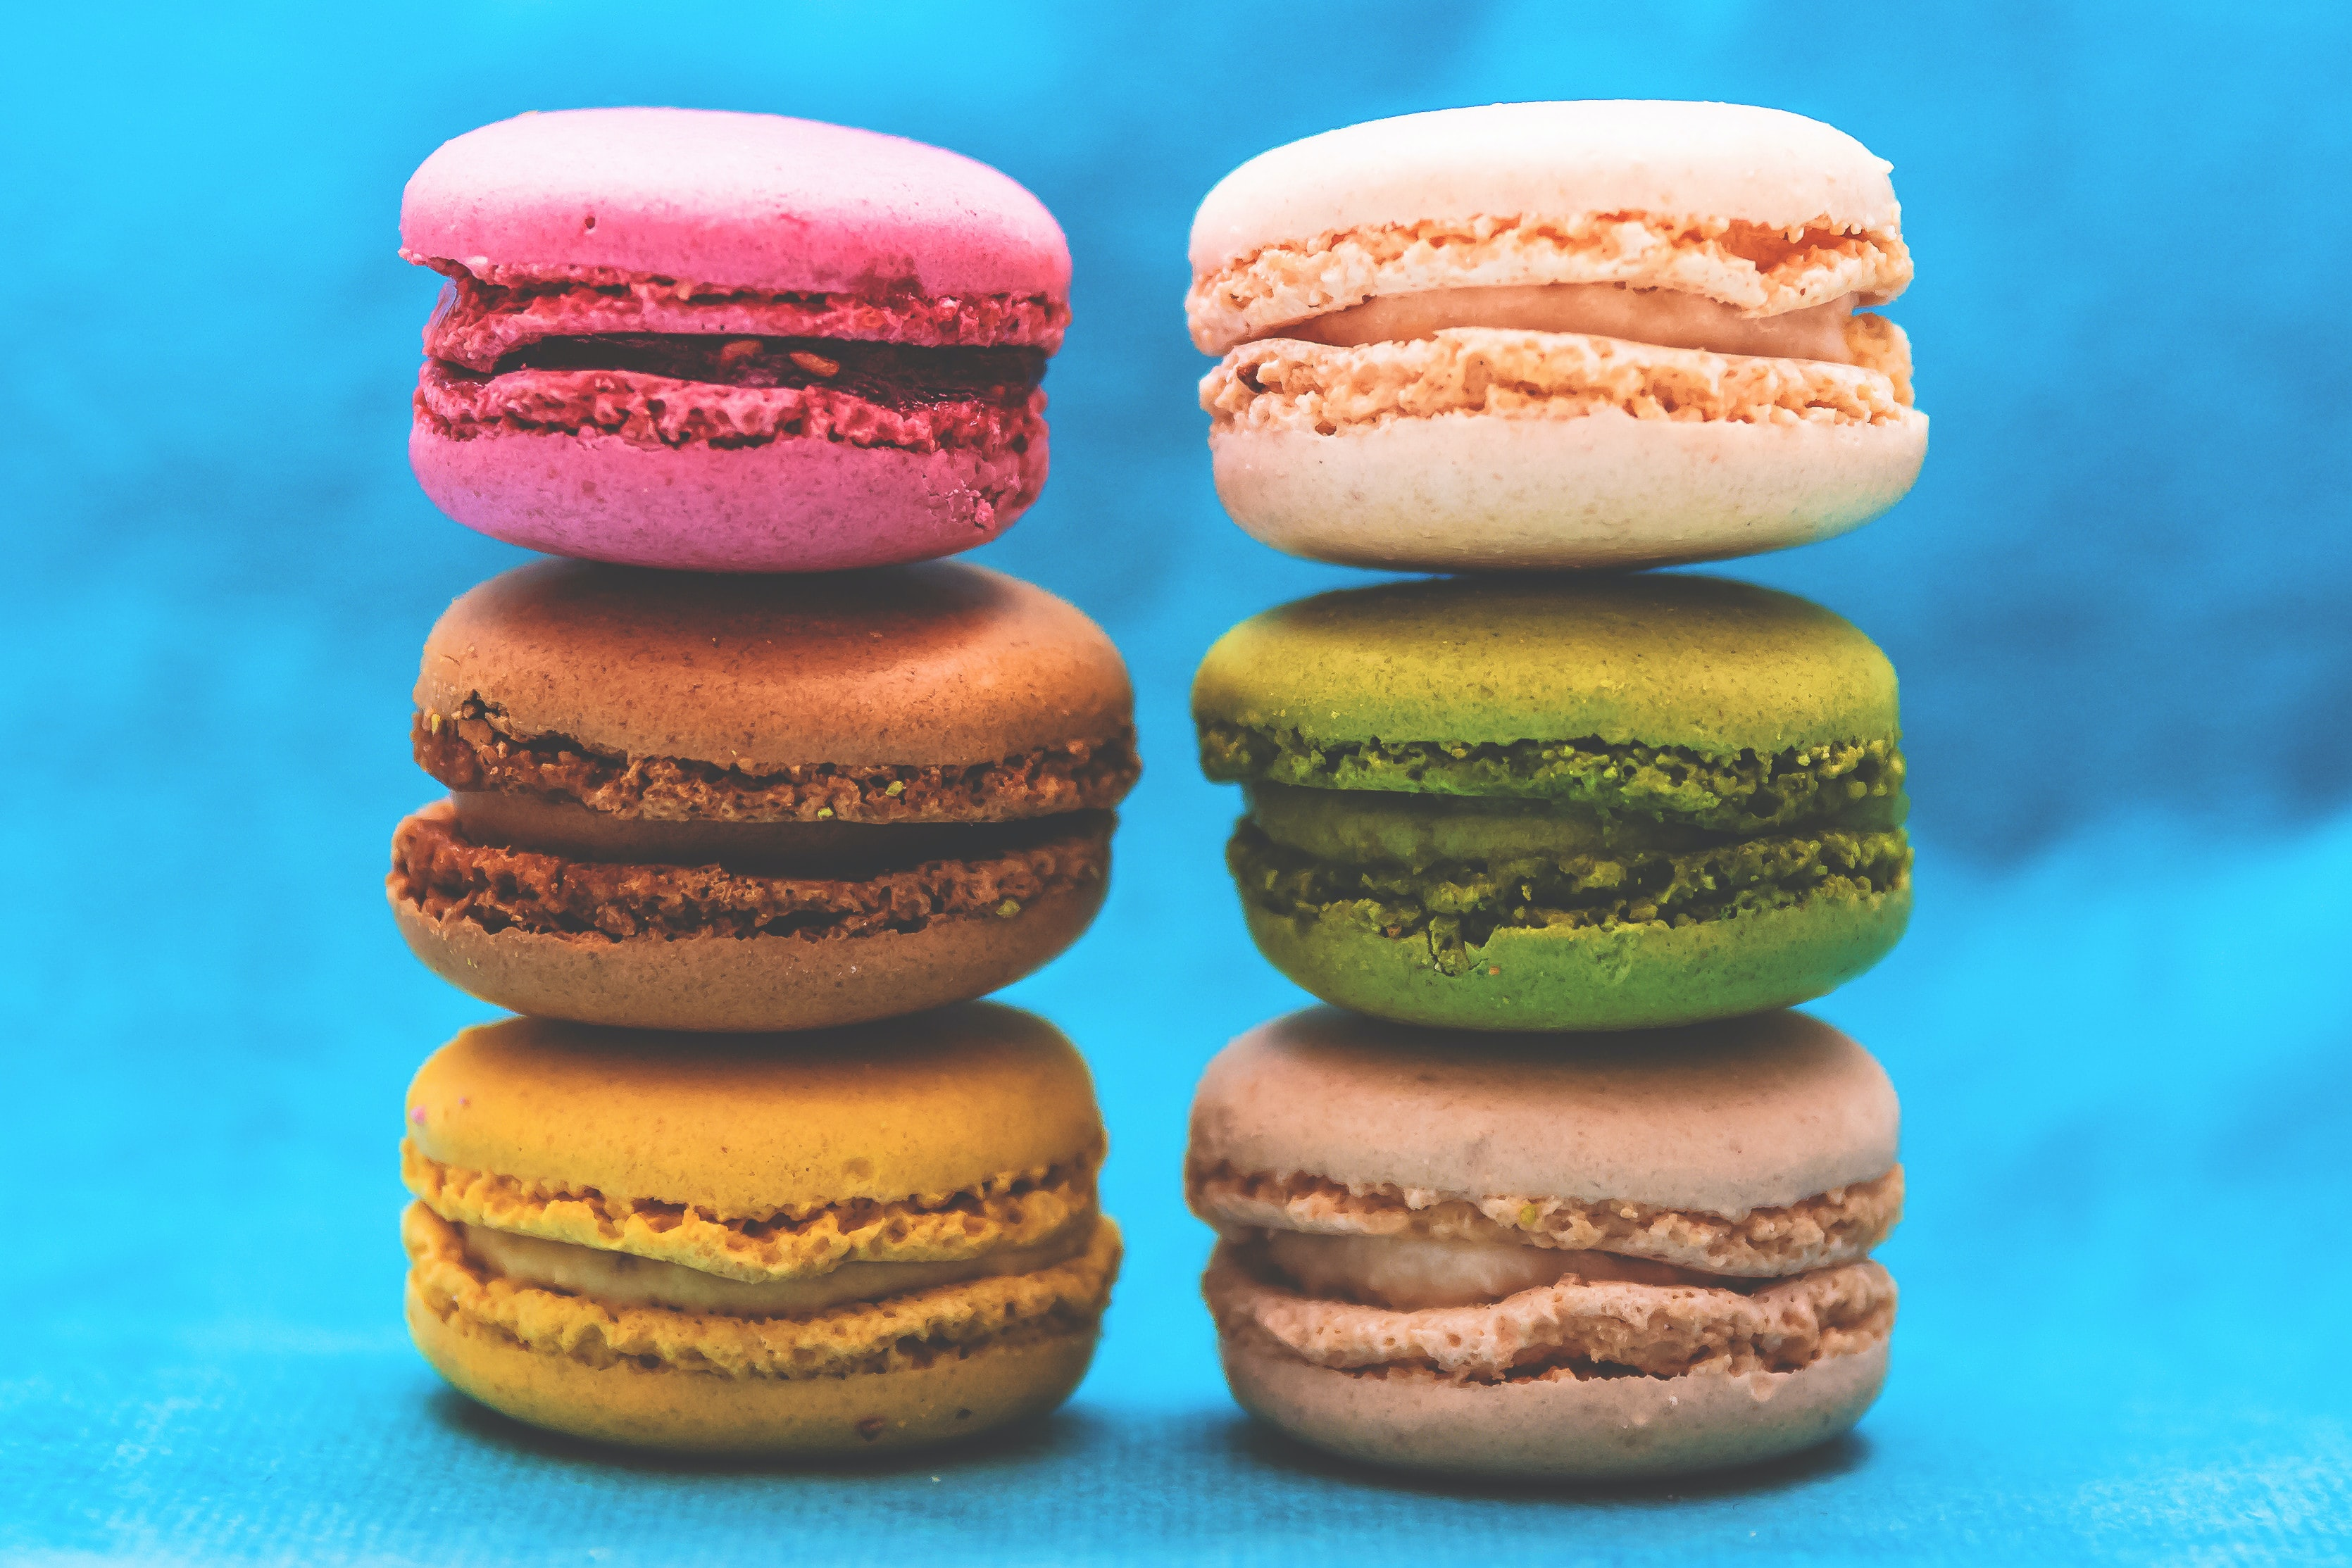 Macaroons in pink, green, brown, and yellow